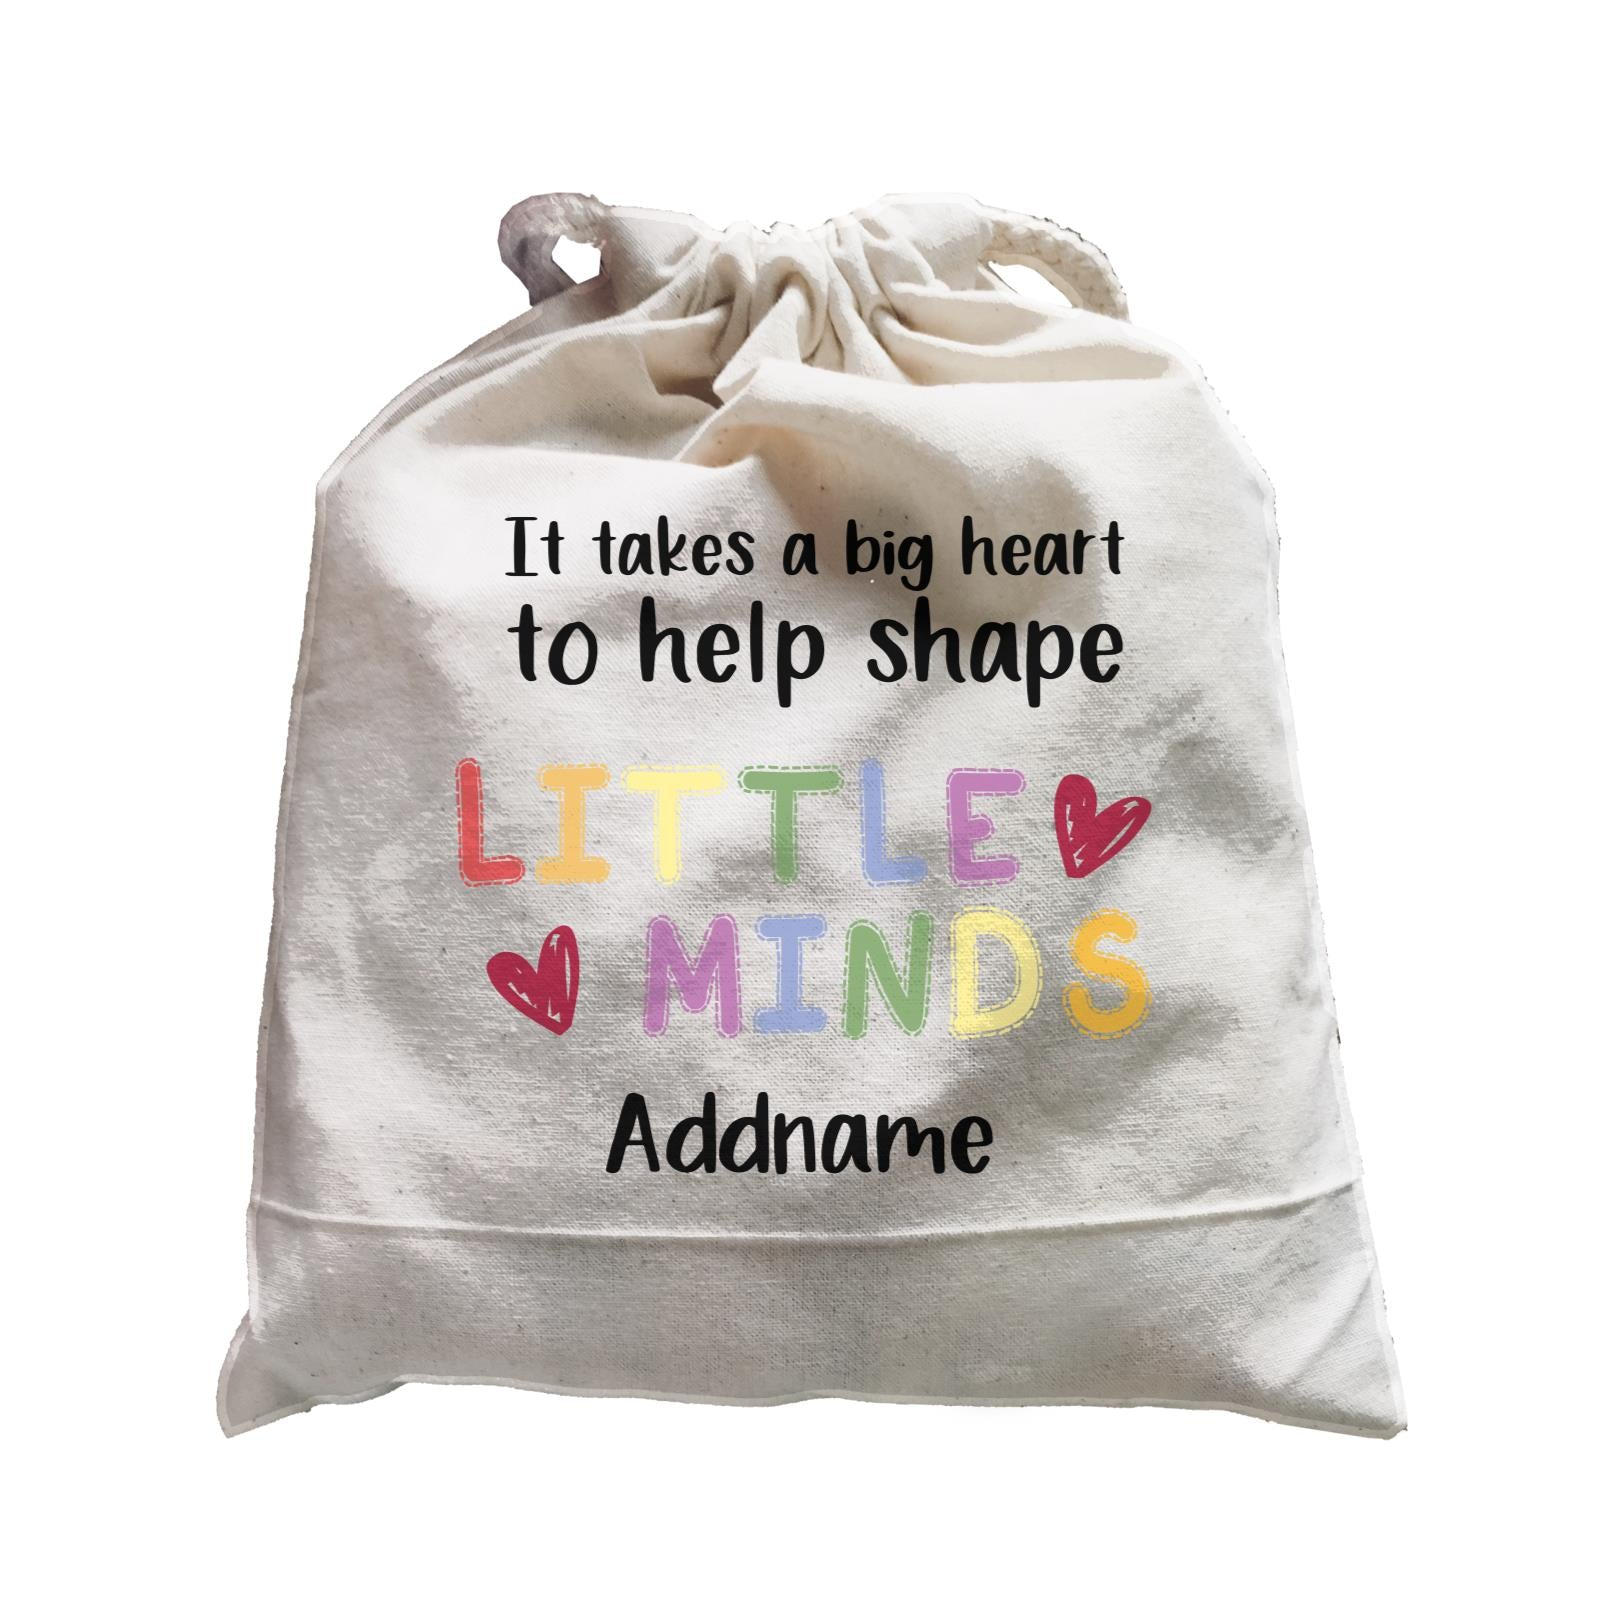 Teacher Quotes 2 It Takes A Big Heart To Help Shape Little Minds Addname Satchel